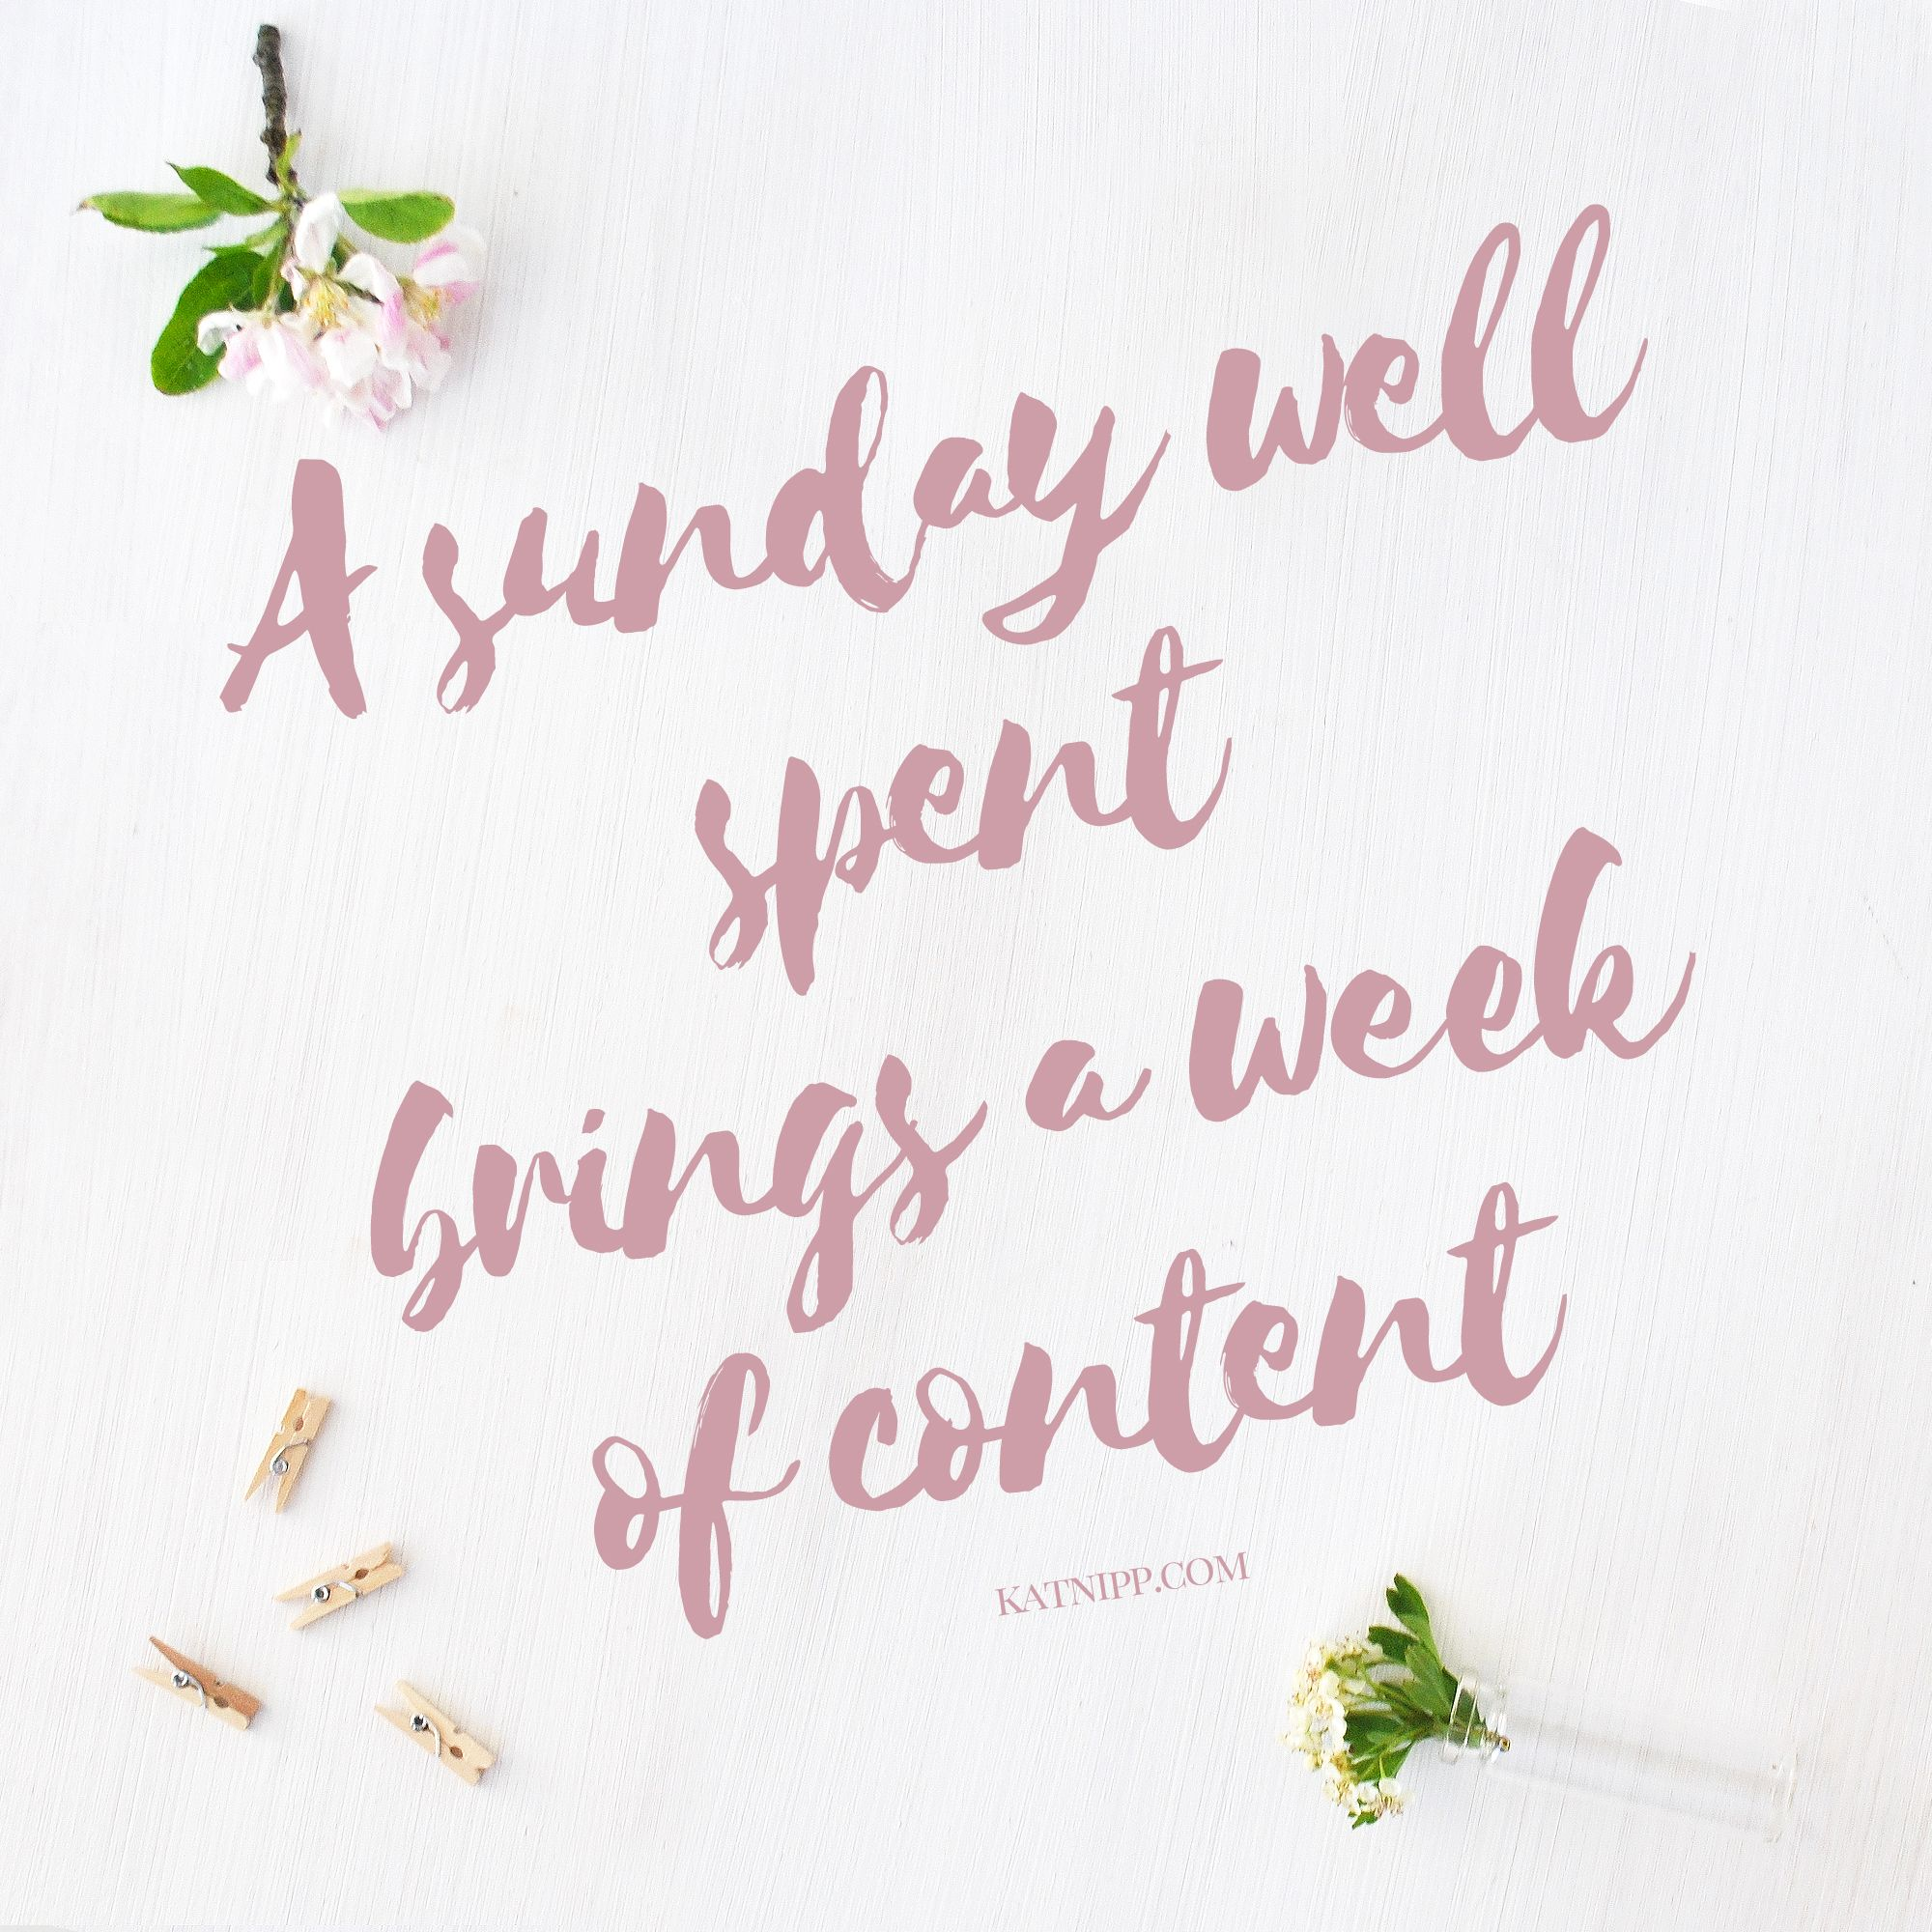 Sunday Working Quotes: Happy Sunday! 'A Sunday Well Spent Brings A Week Of